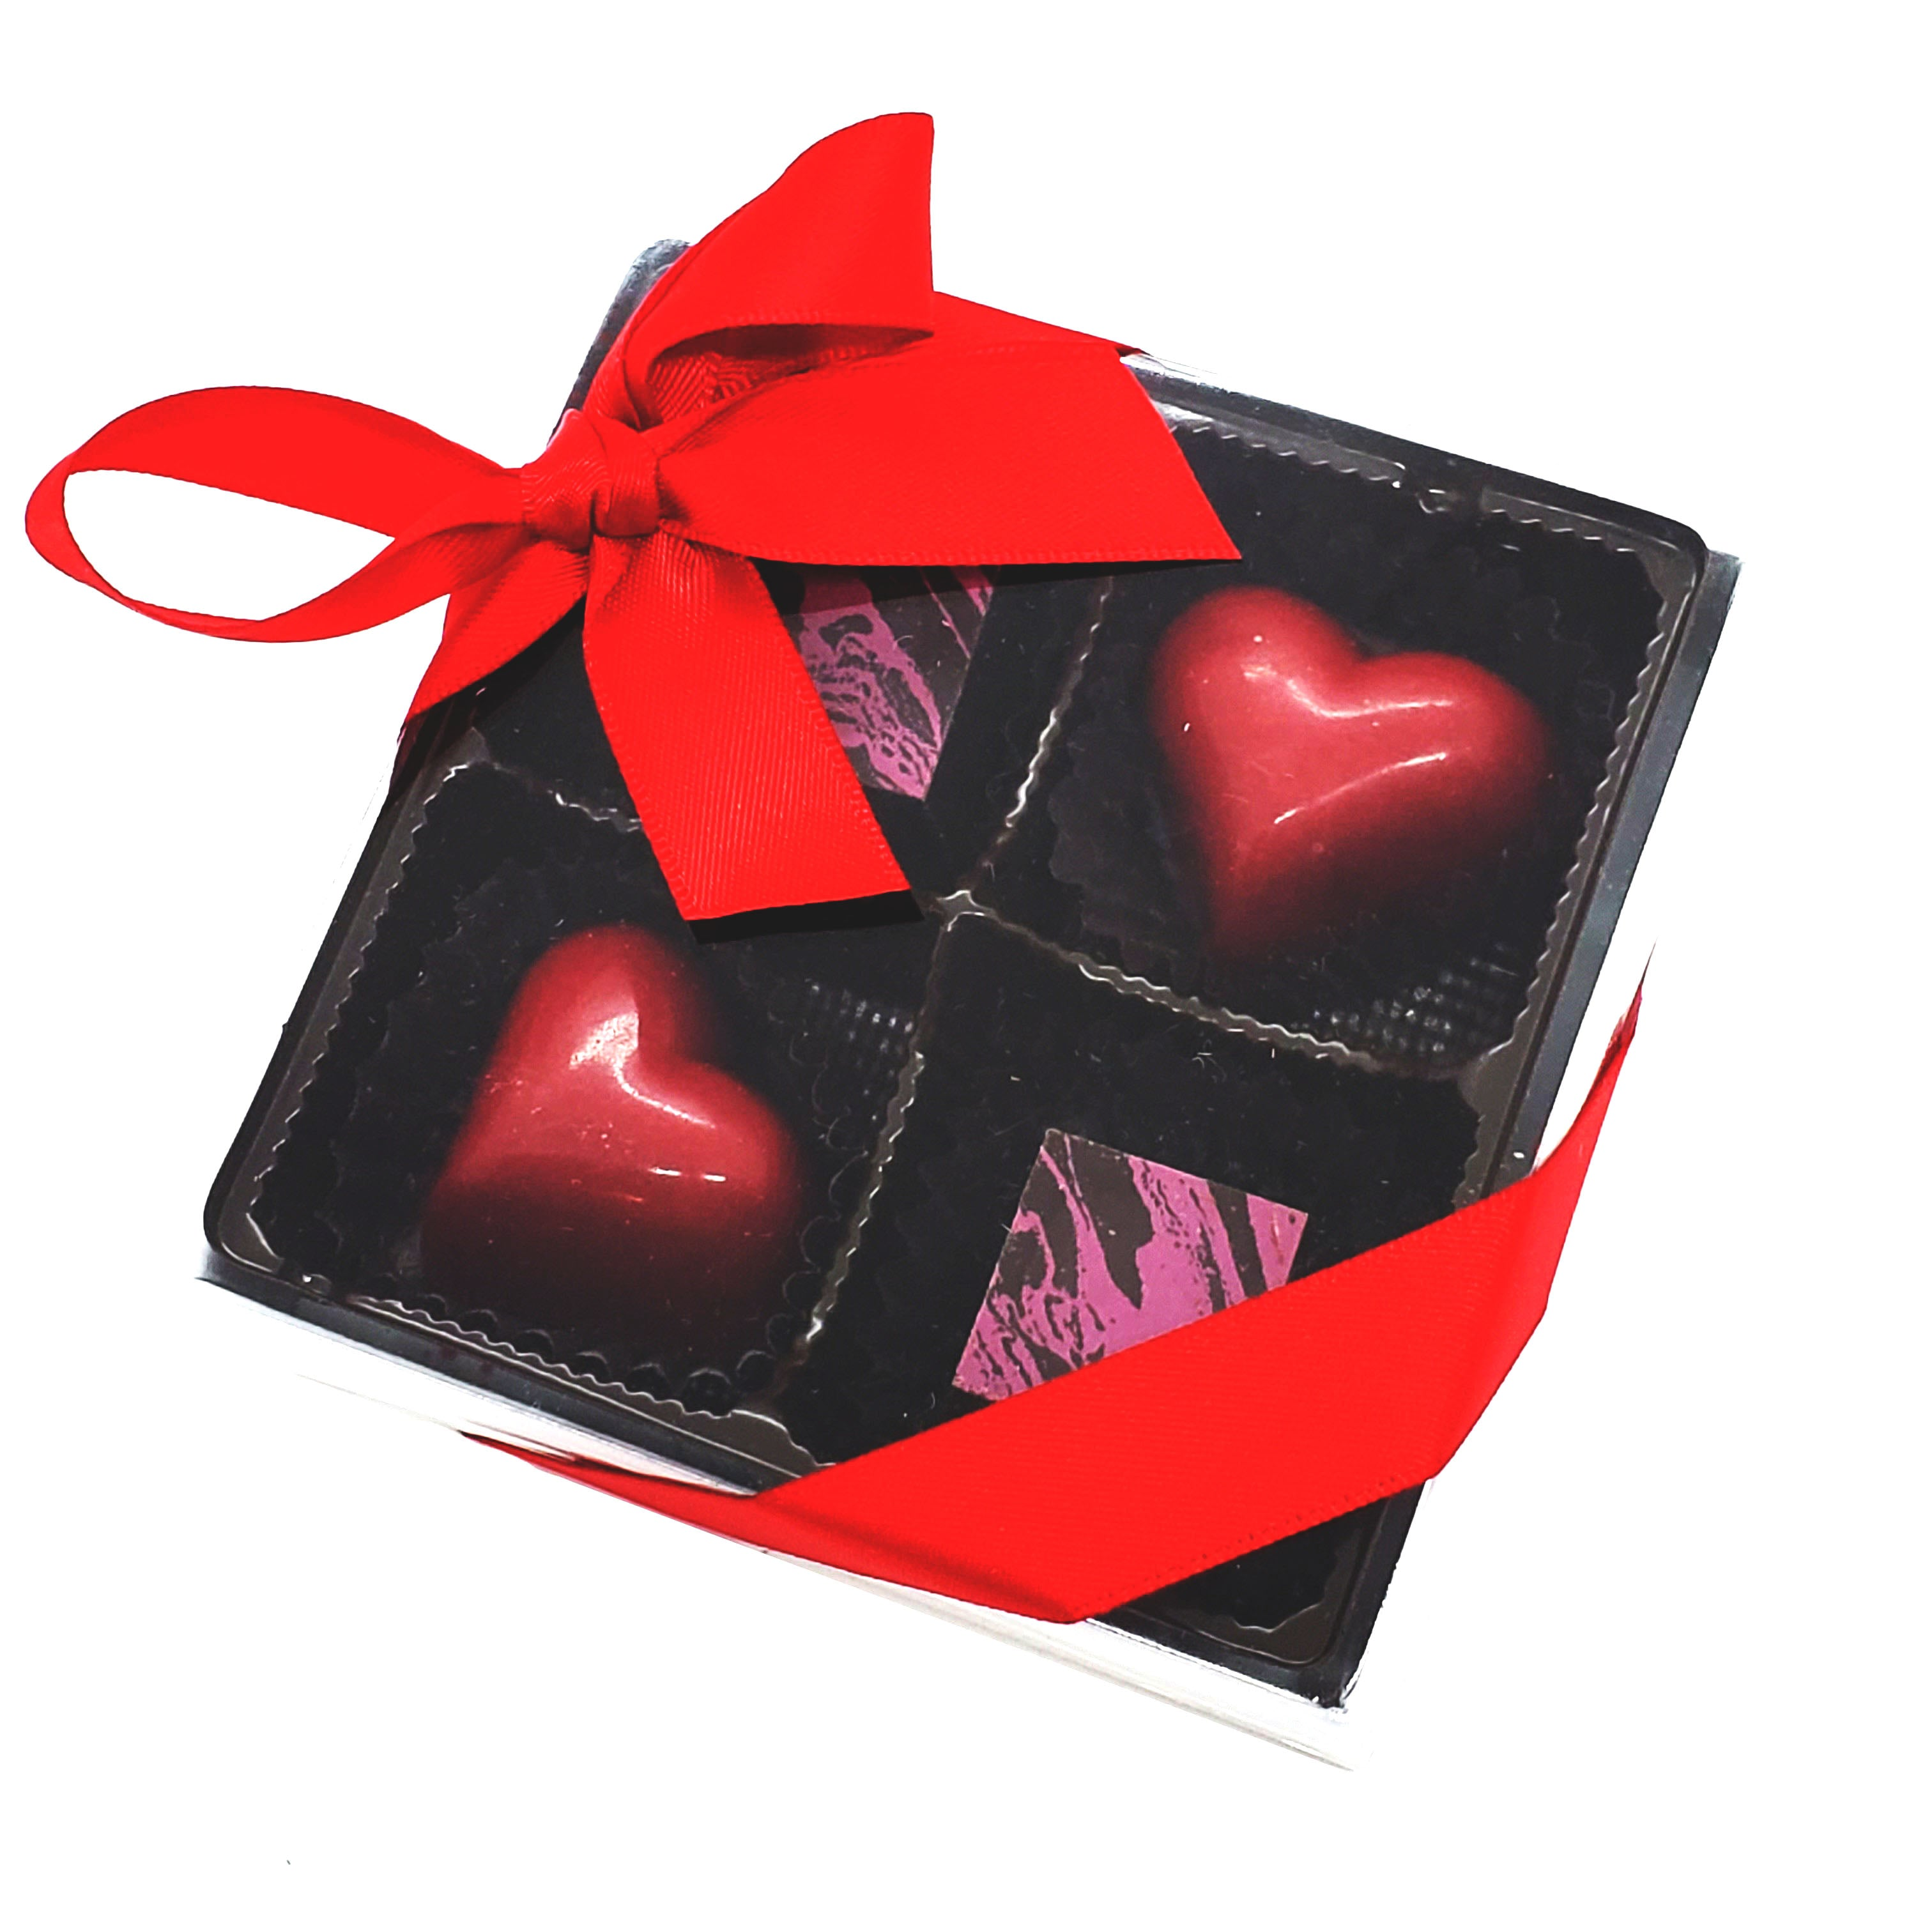 Zoë's Chocolate Co. 4-pieces gift box